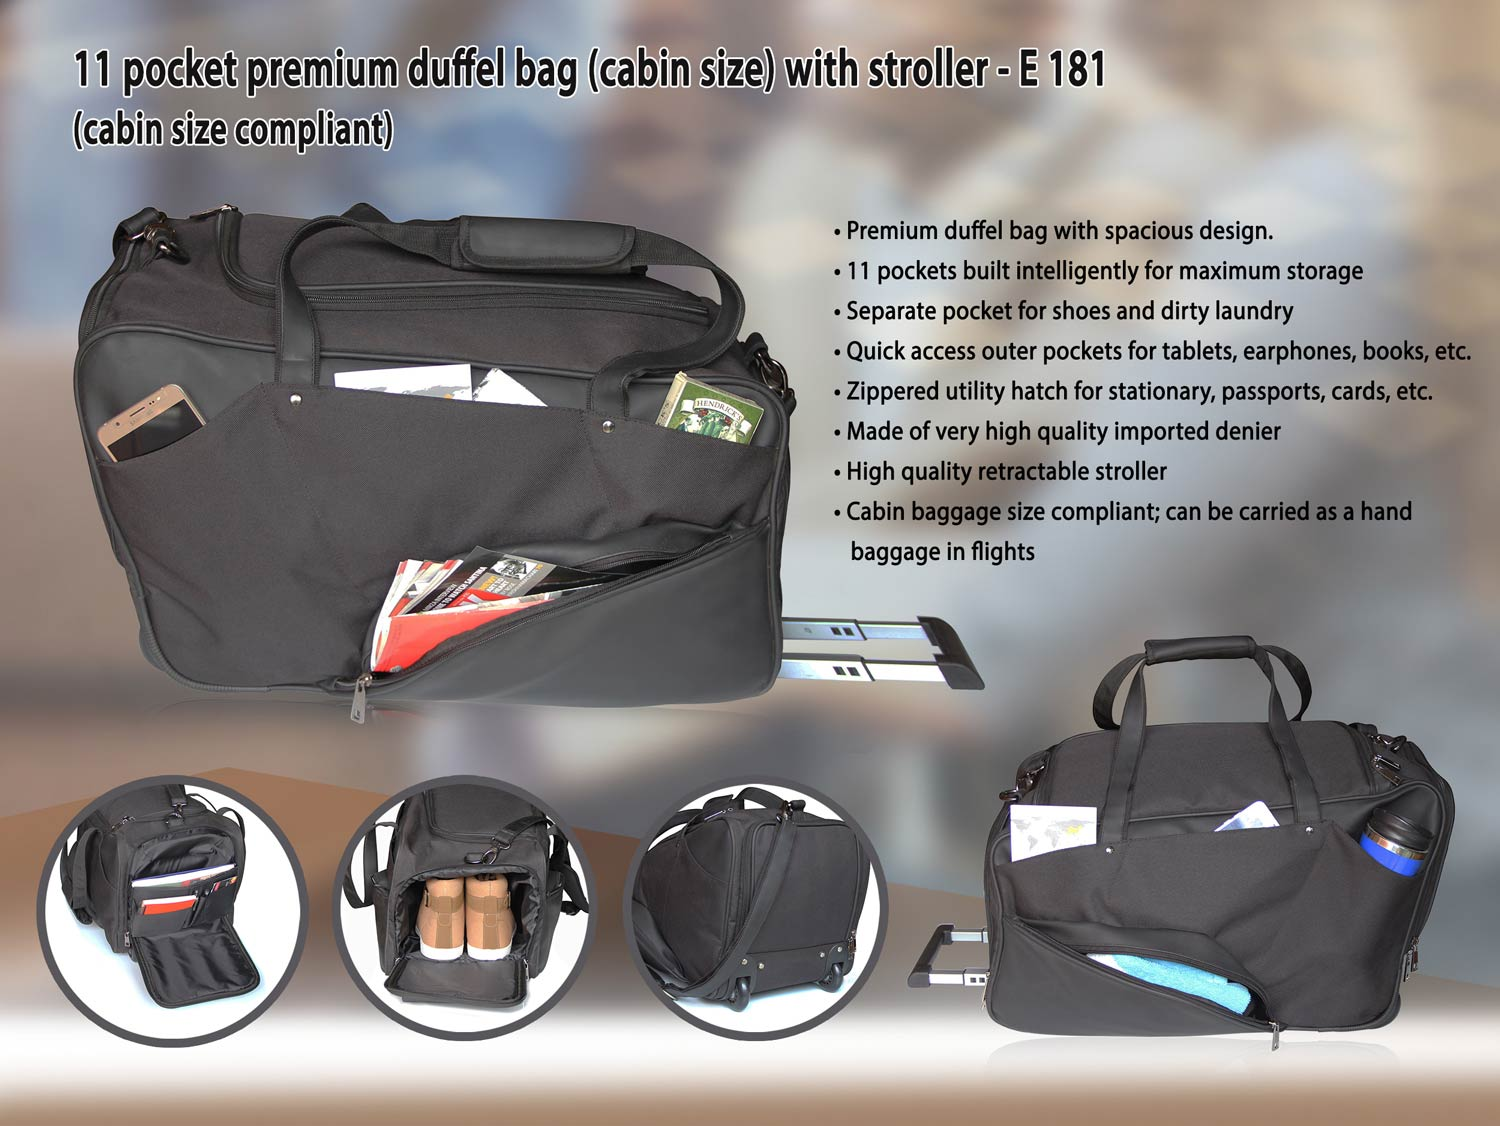 E181 - 11 POCKET PREMIUM DUFFEL BAG (CABIN SIZE) WITH STROLLER